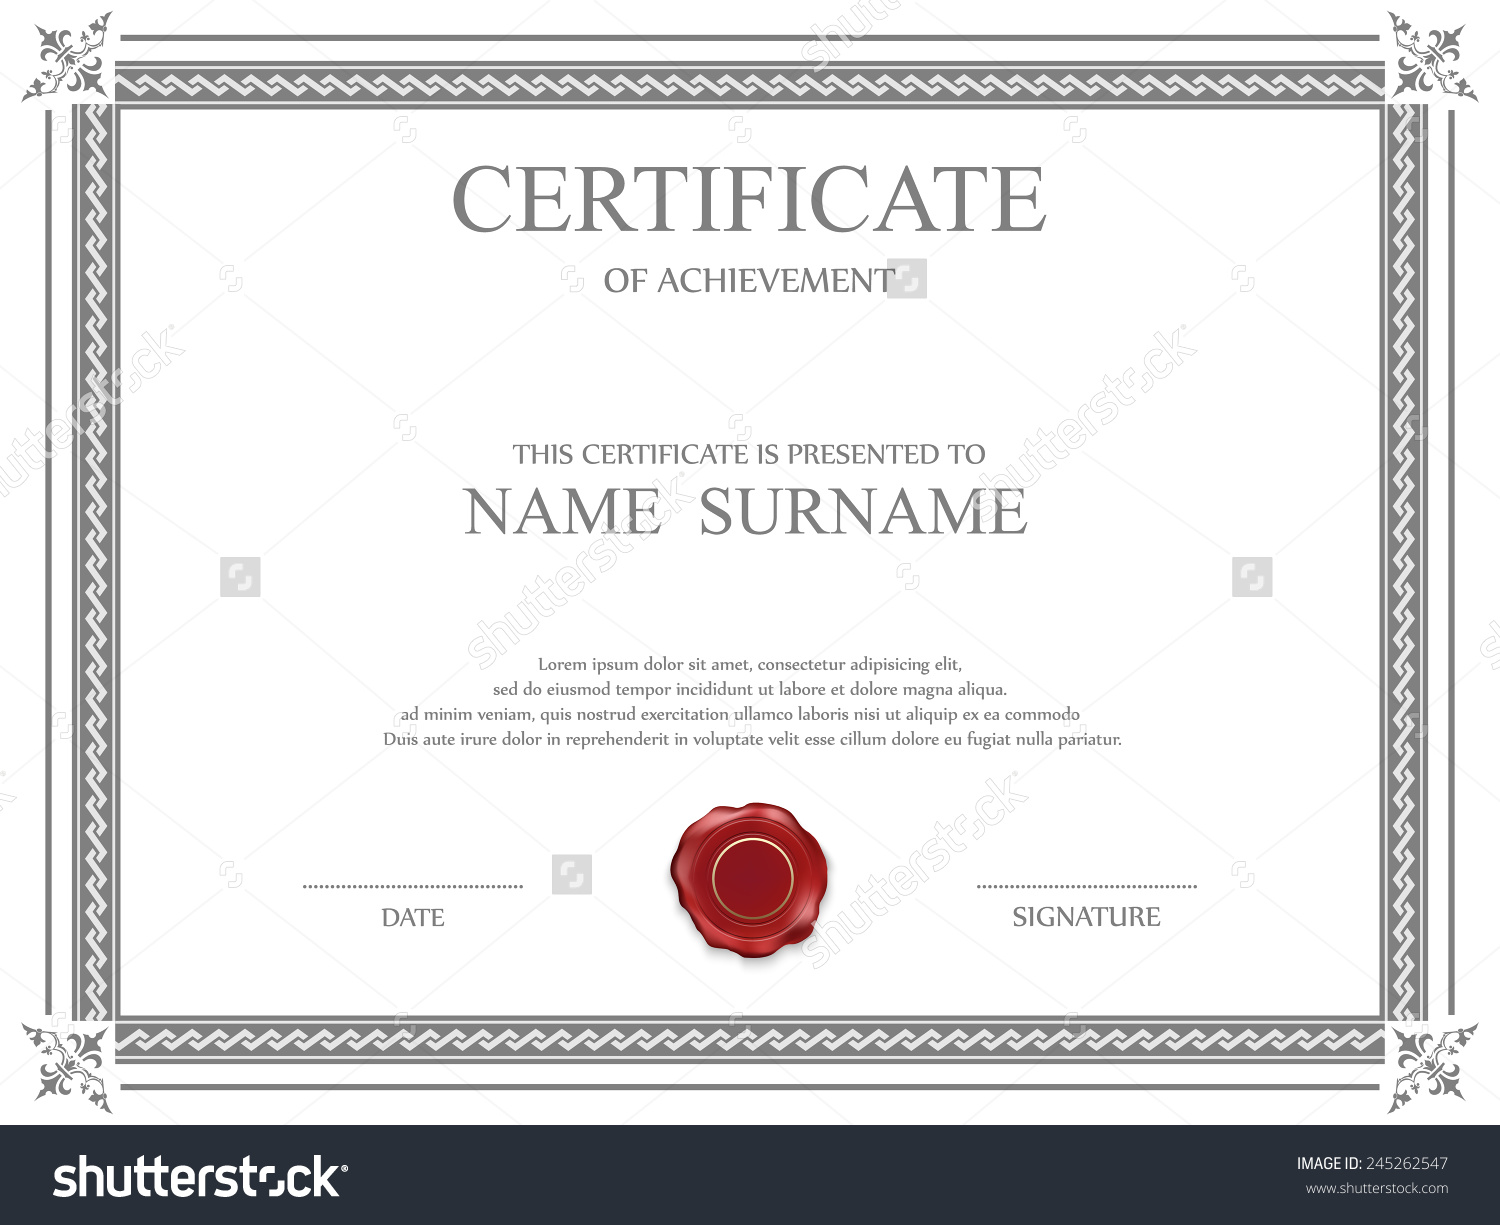 Share certificate template south africa planner template for Certification document template